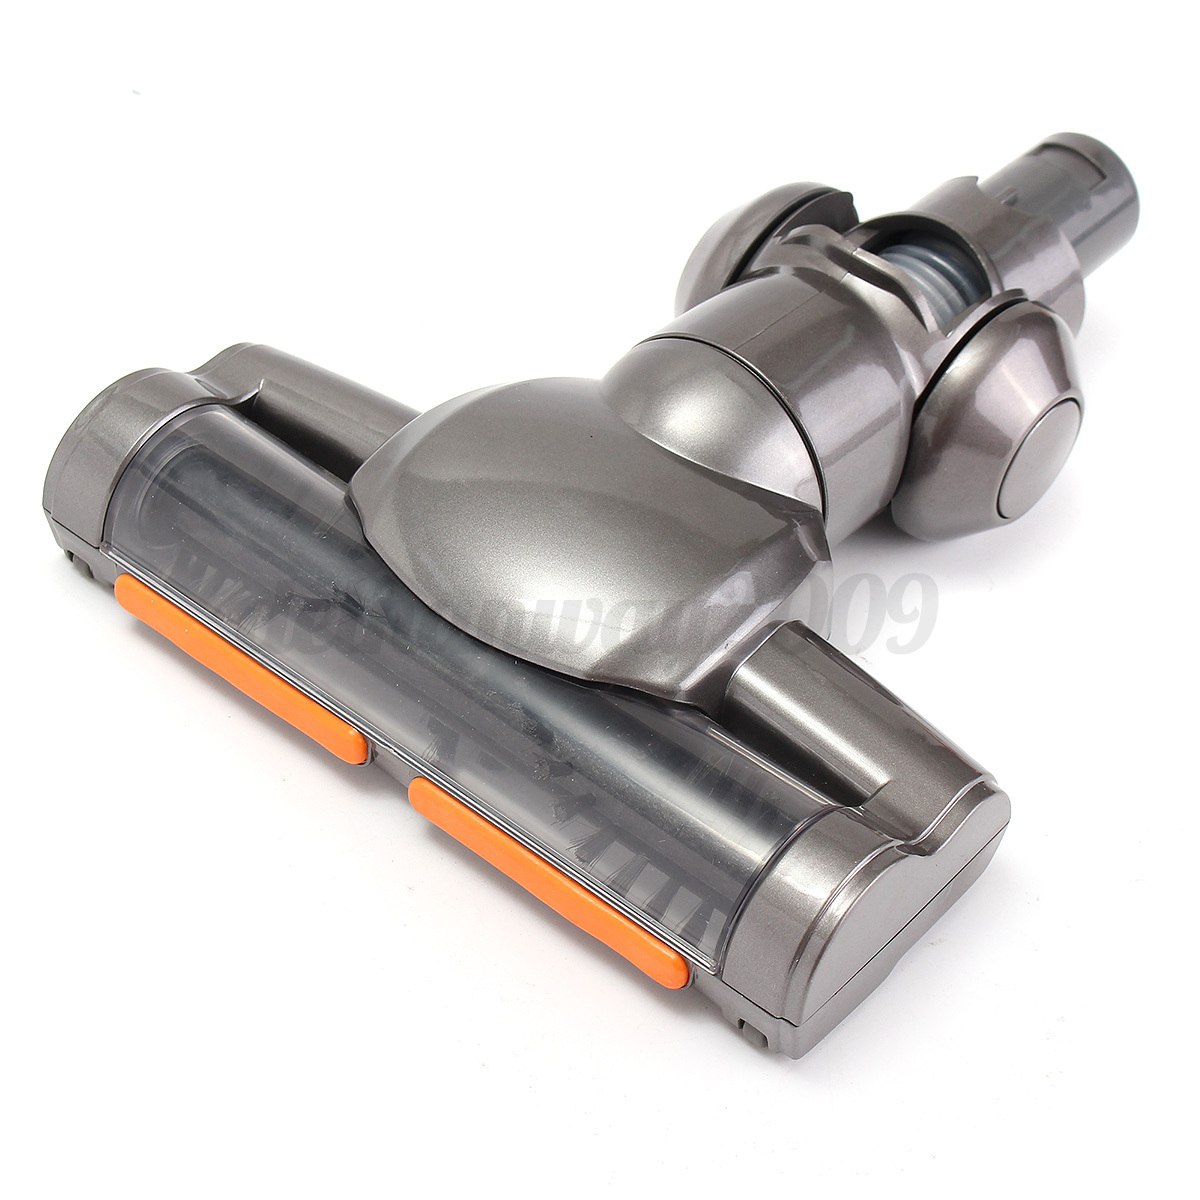 For dyson dc35 dc34 dc31 motorized floor tool vacuum for Dyson mini motorized tool uses